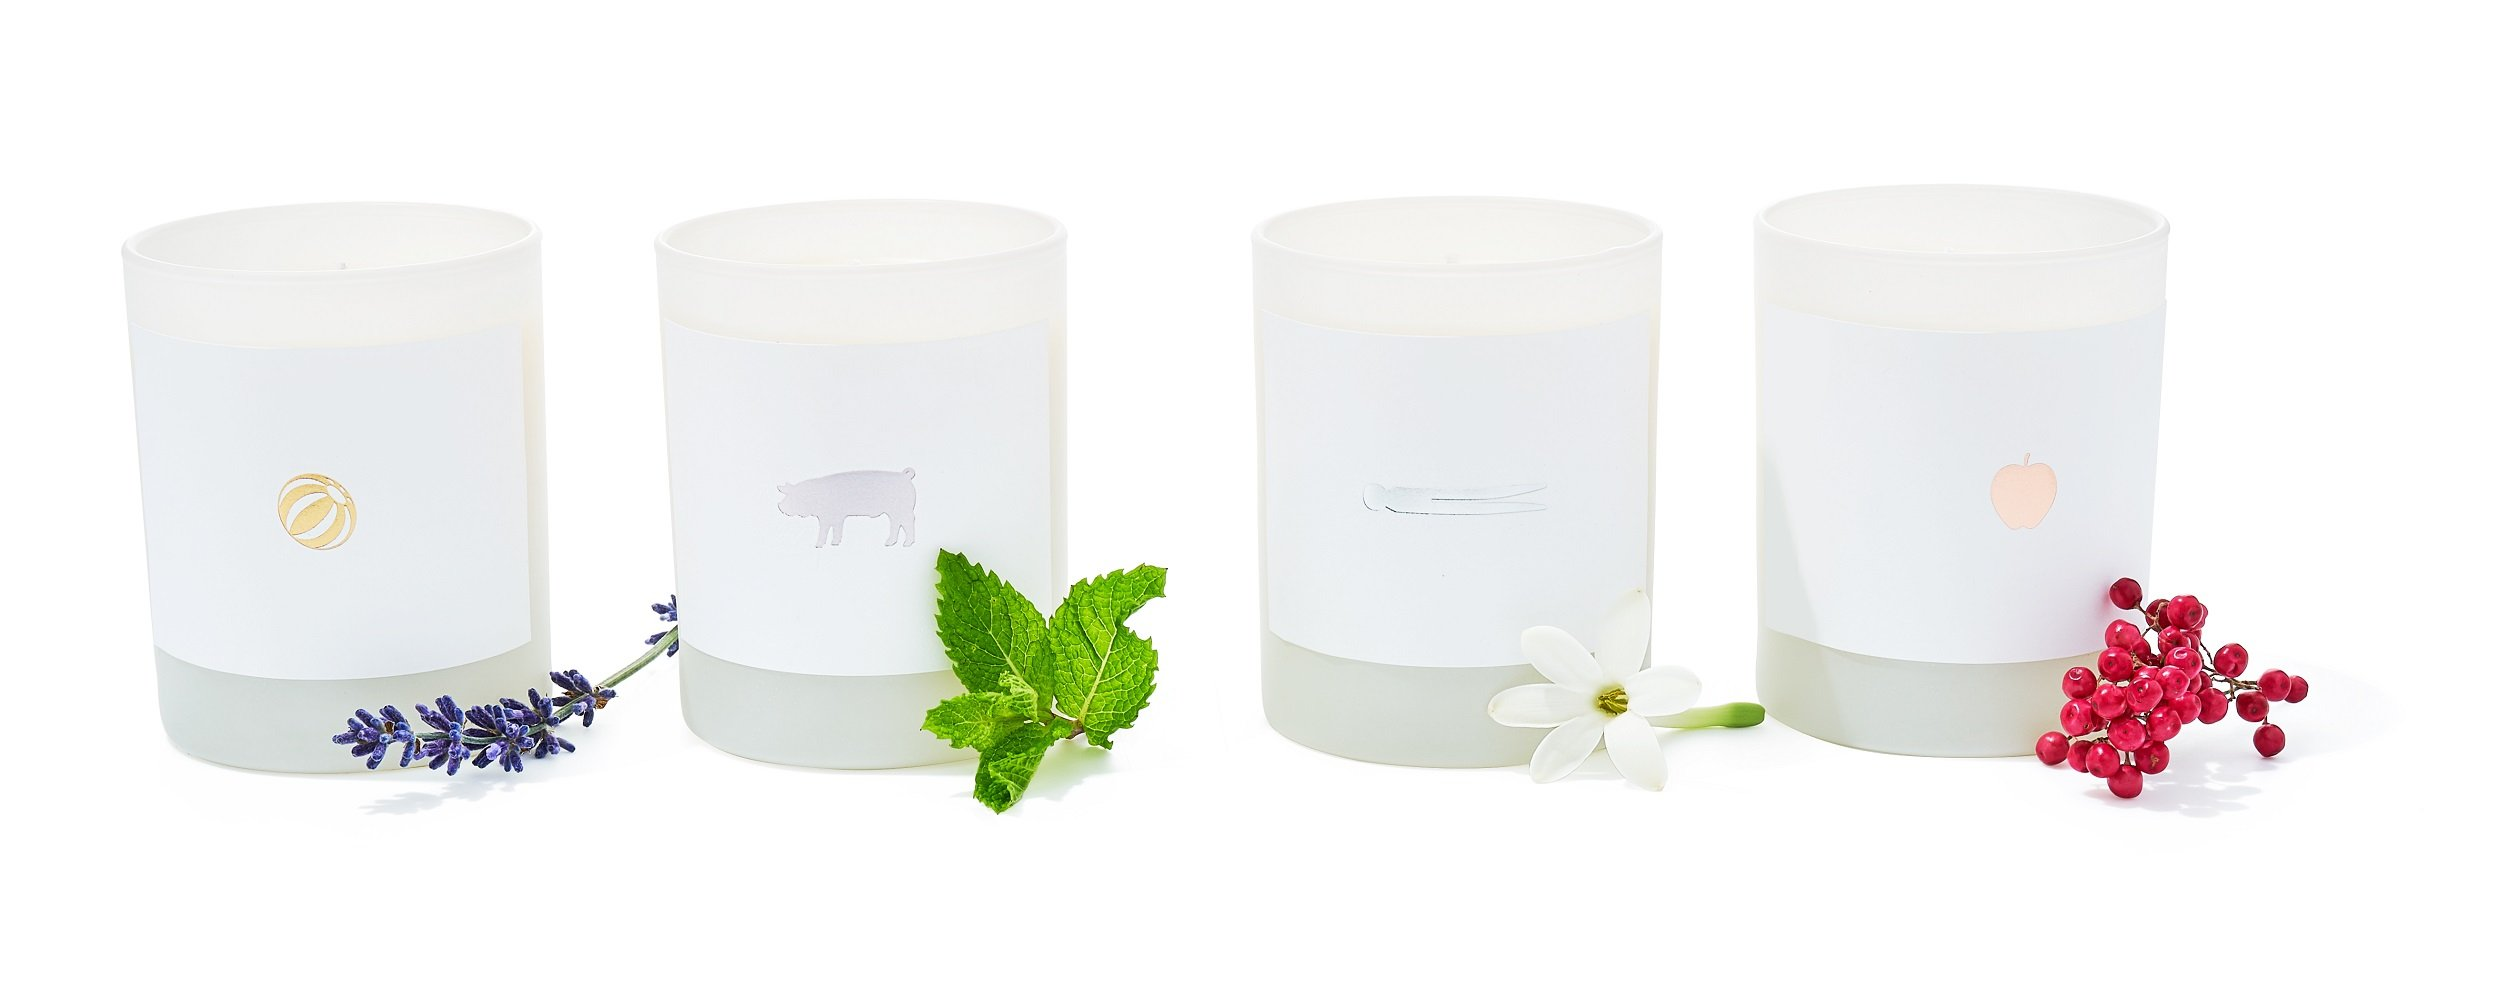 Finesse, The Store Scented Candles by Joya (Set of 4 Contains The French Laundry,Ad Hoc,Per Se and Bouchon Scented Candles) by Finesse, The Store